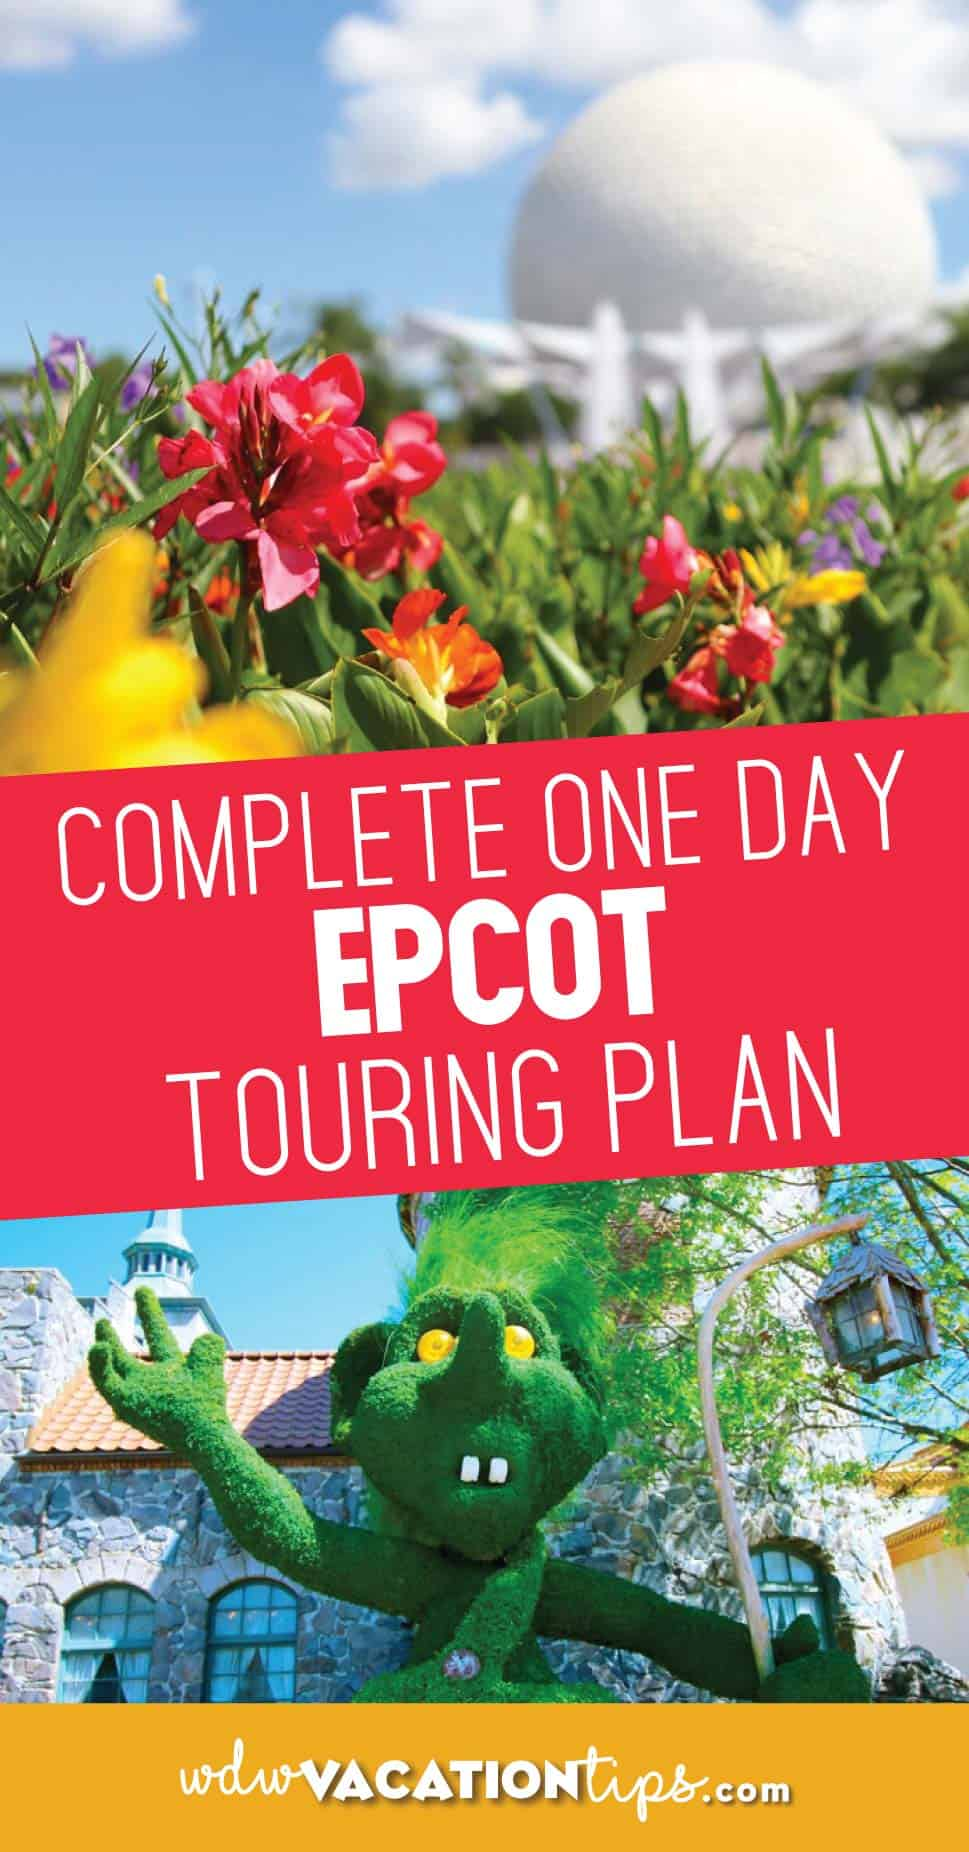 One Day Epcot Touring Plan: Explore and Discover Everything in One Visit 1